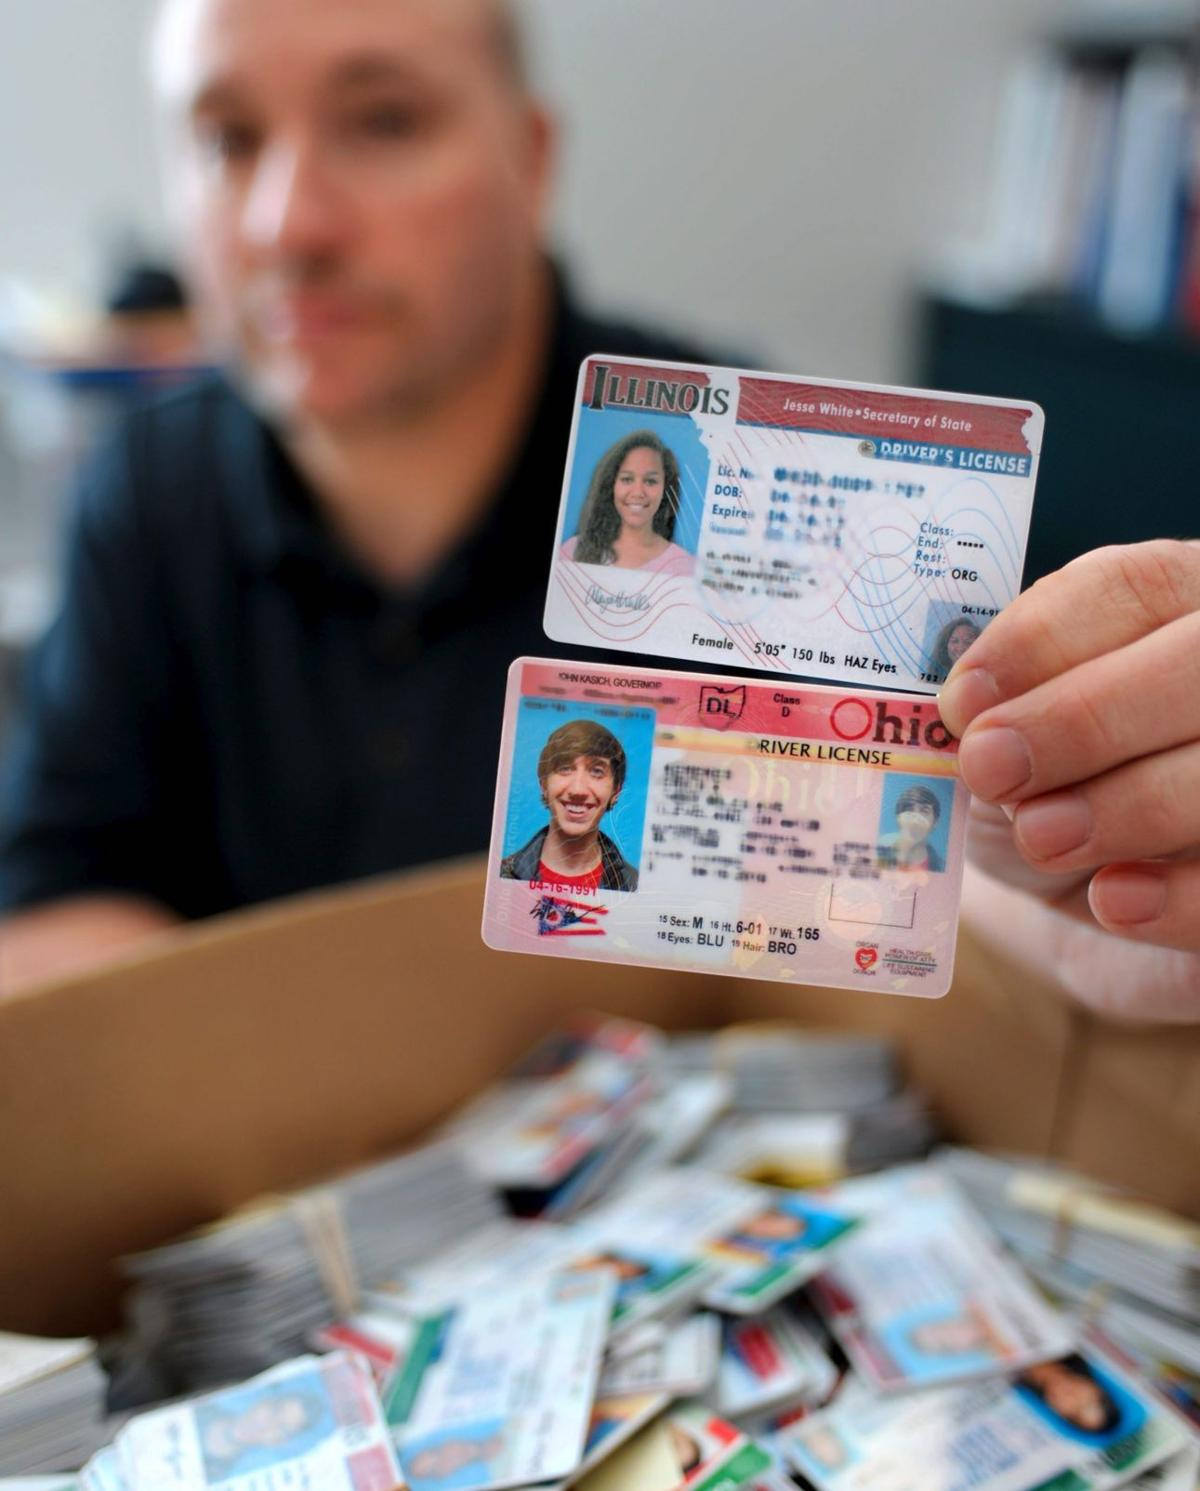 Better tech makes fake IDs harder to detect | News | news